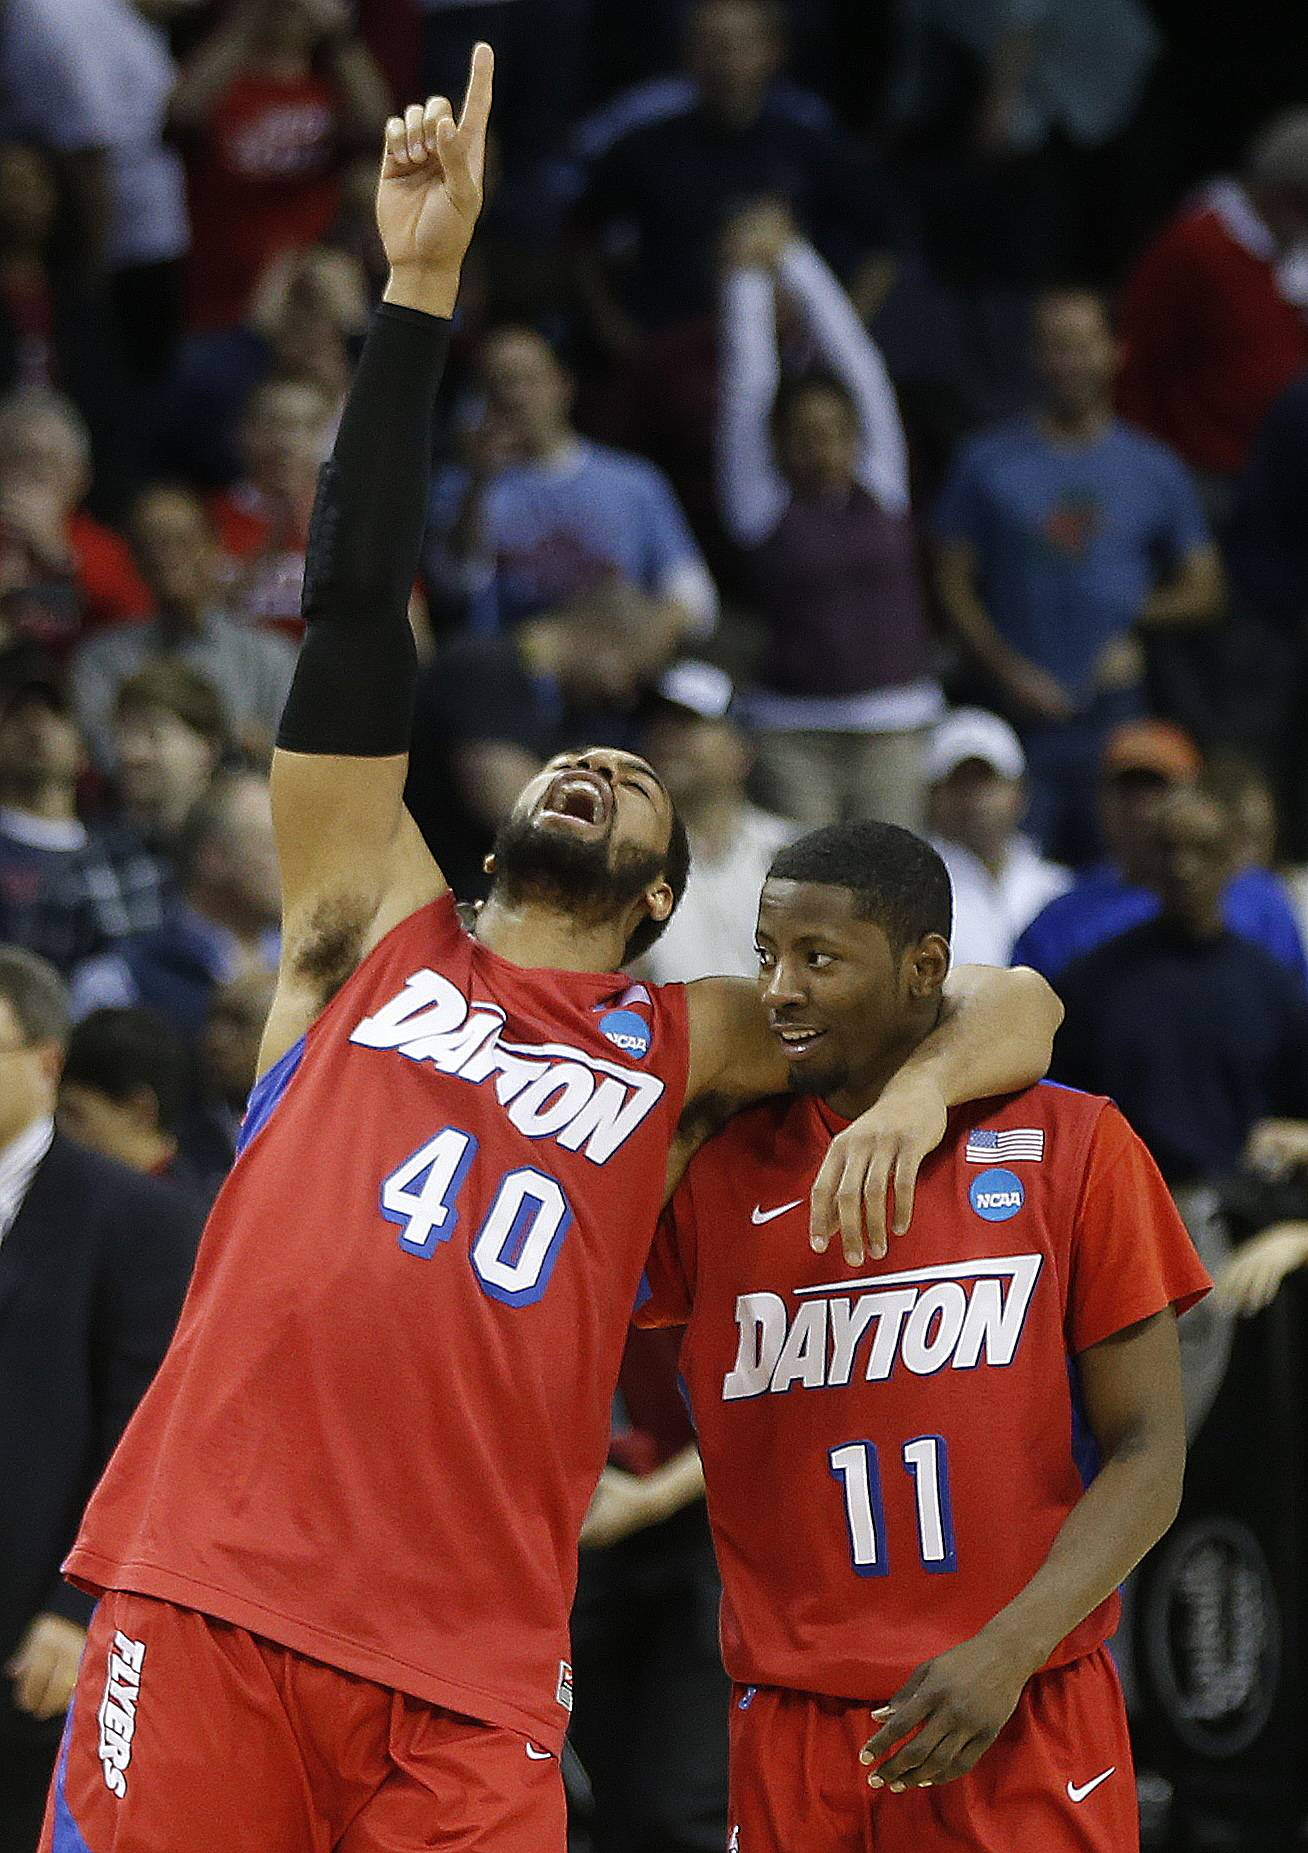 Dayton's Devon Scott (40) and Scoochie Smith (11) celebrate after the second half in a regional semifinal game against Stanford at the NCAA college basketball tournament, Thursday, March 27, 2014, in Memphis, Tenn. Dayton won 82-72.